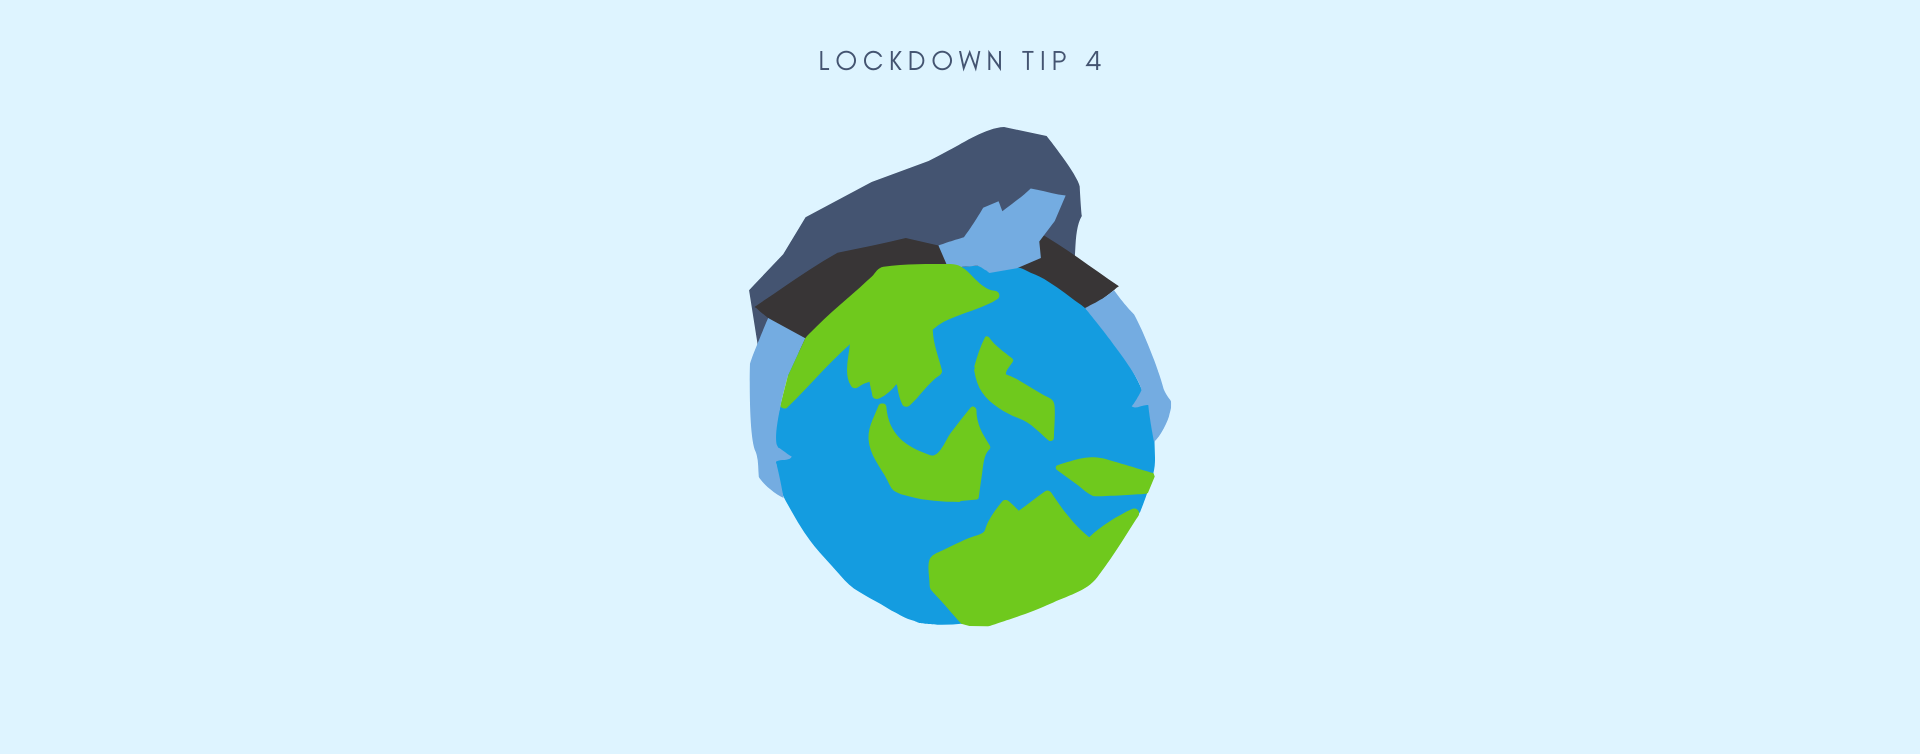 MCSA Lockdown Tip 4